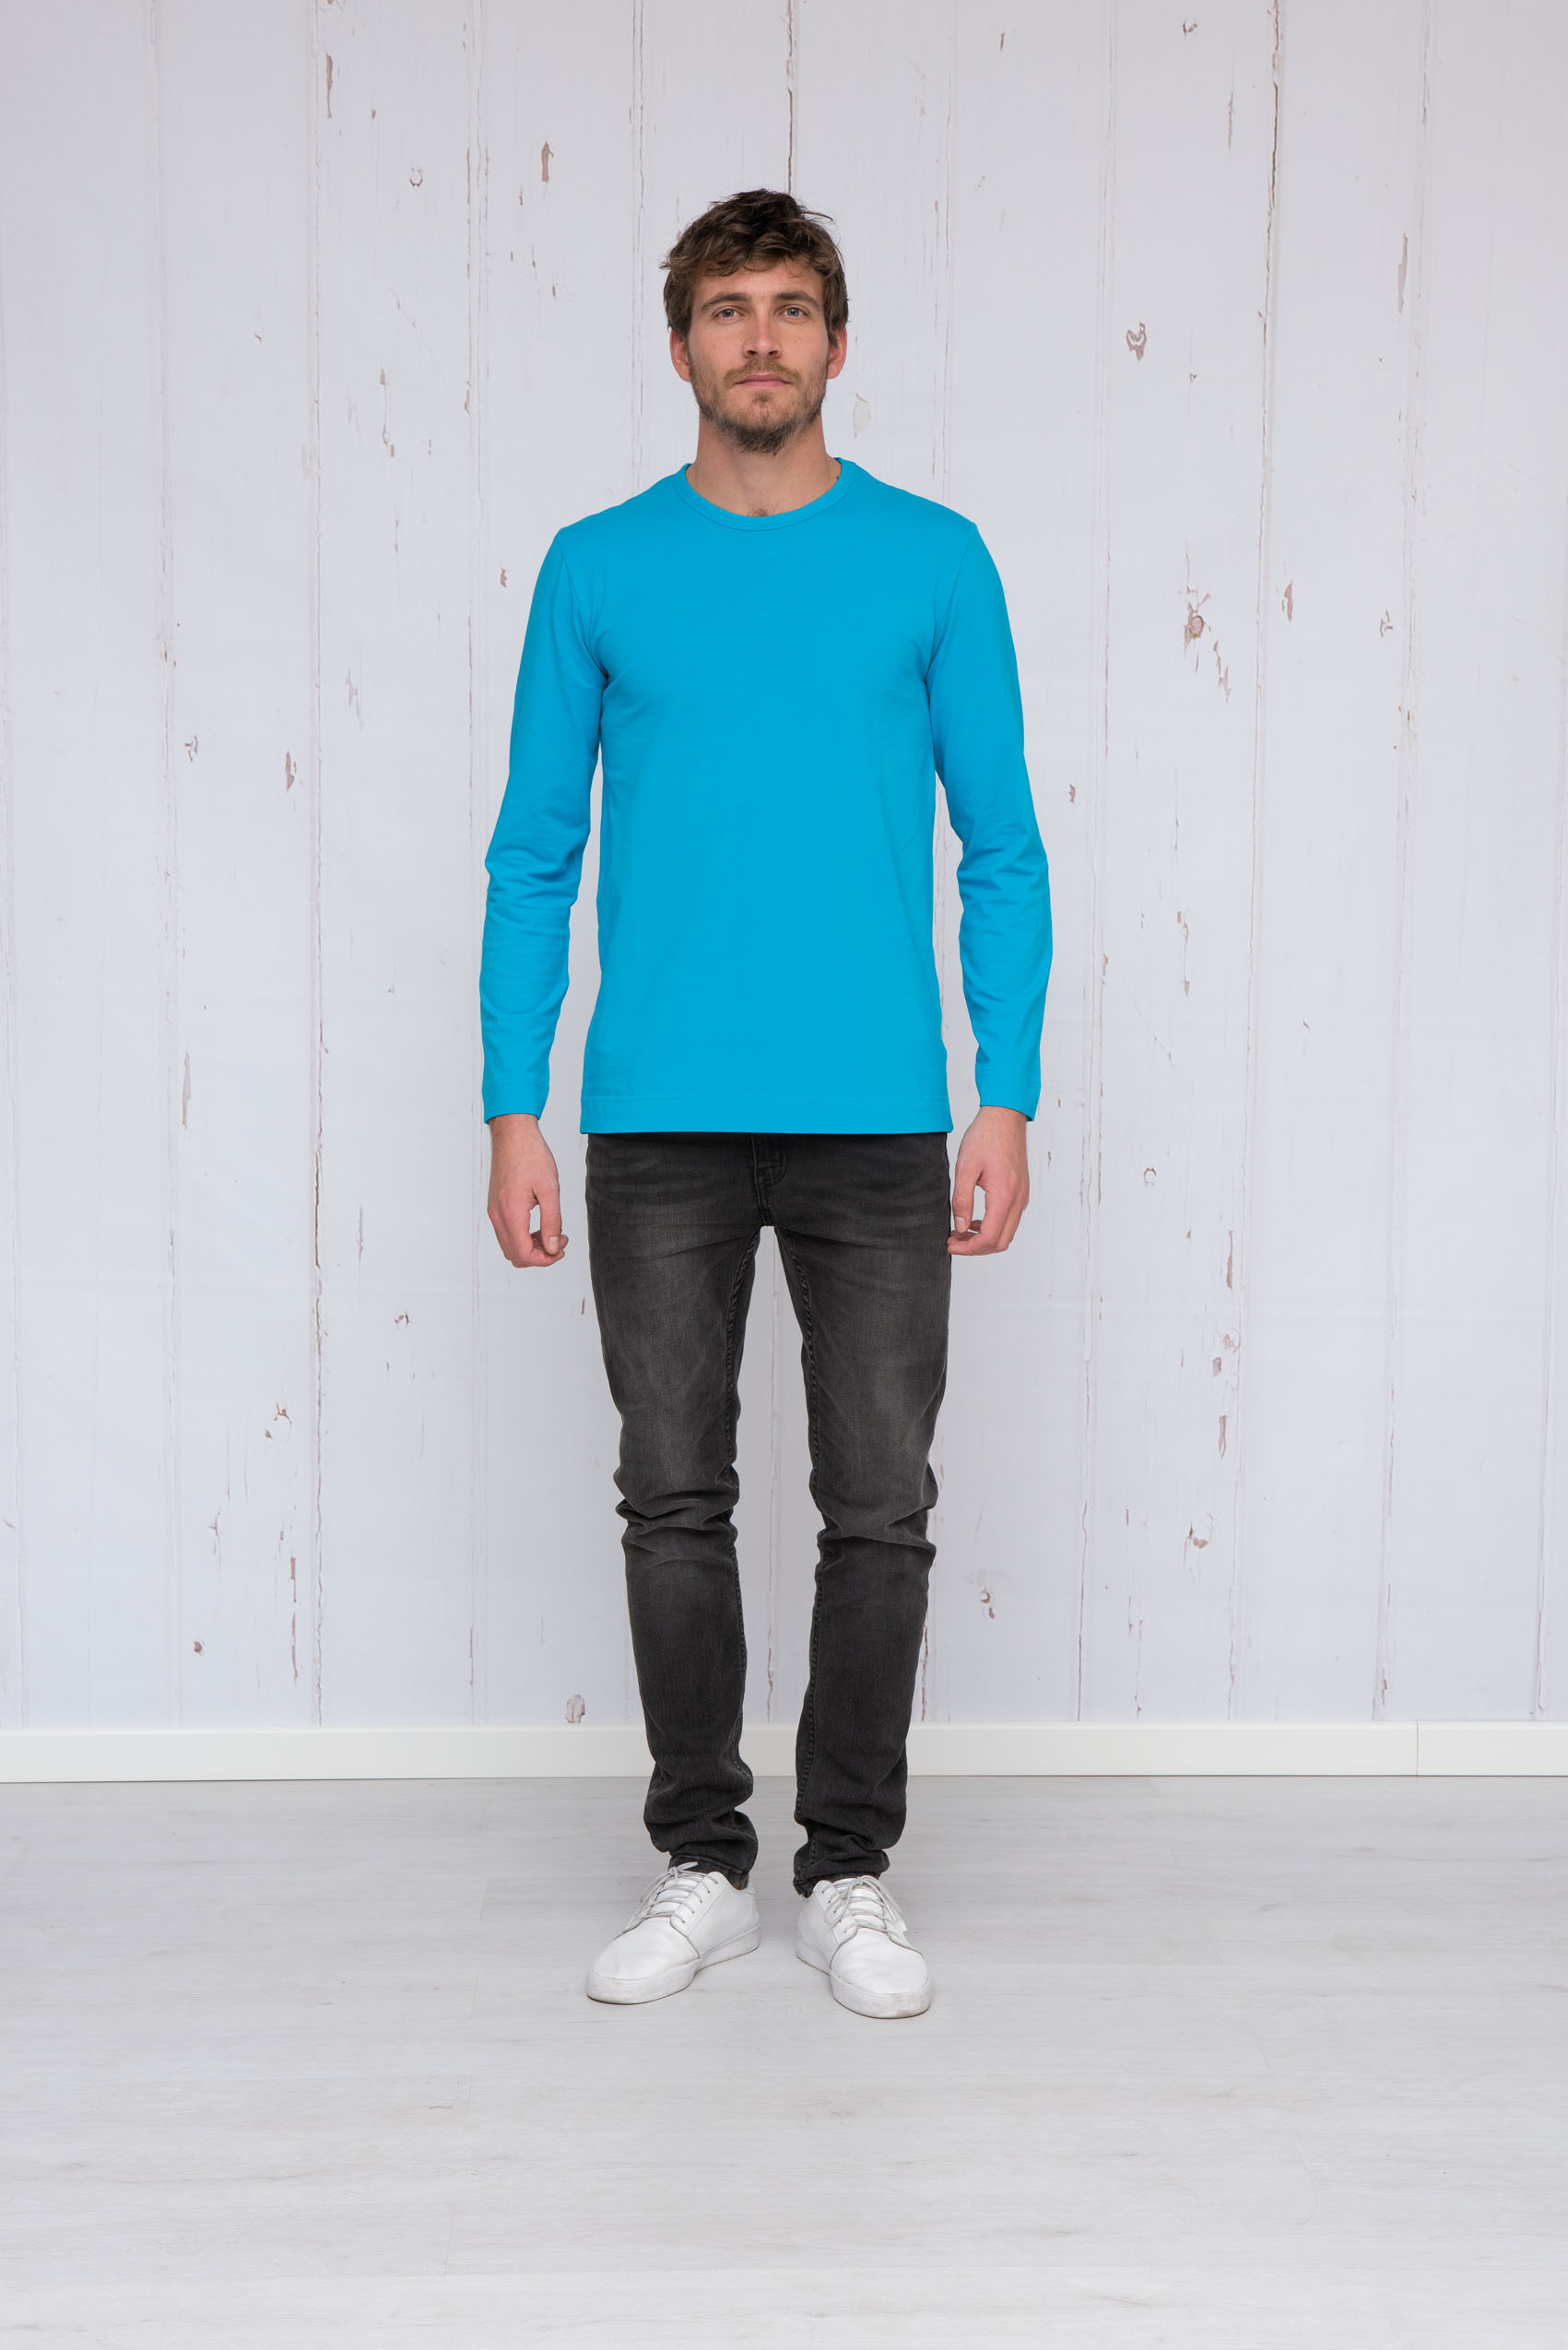 T-shirt crewneck cotton/elasthan longsleeve for him